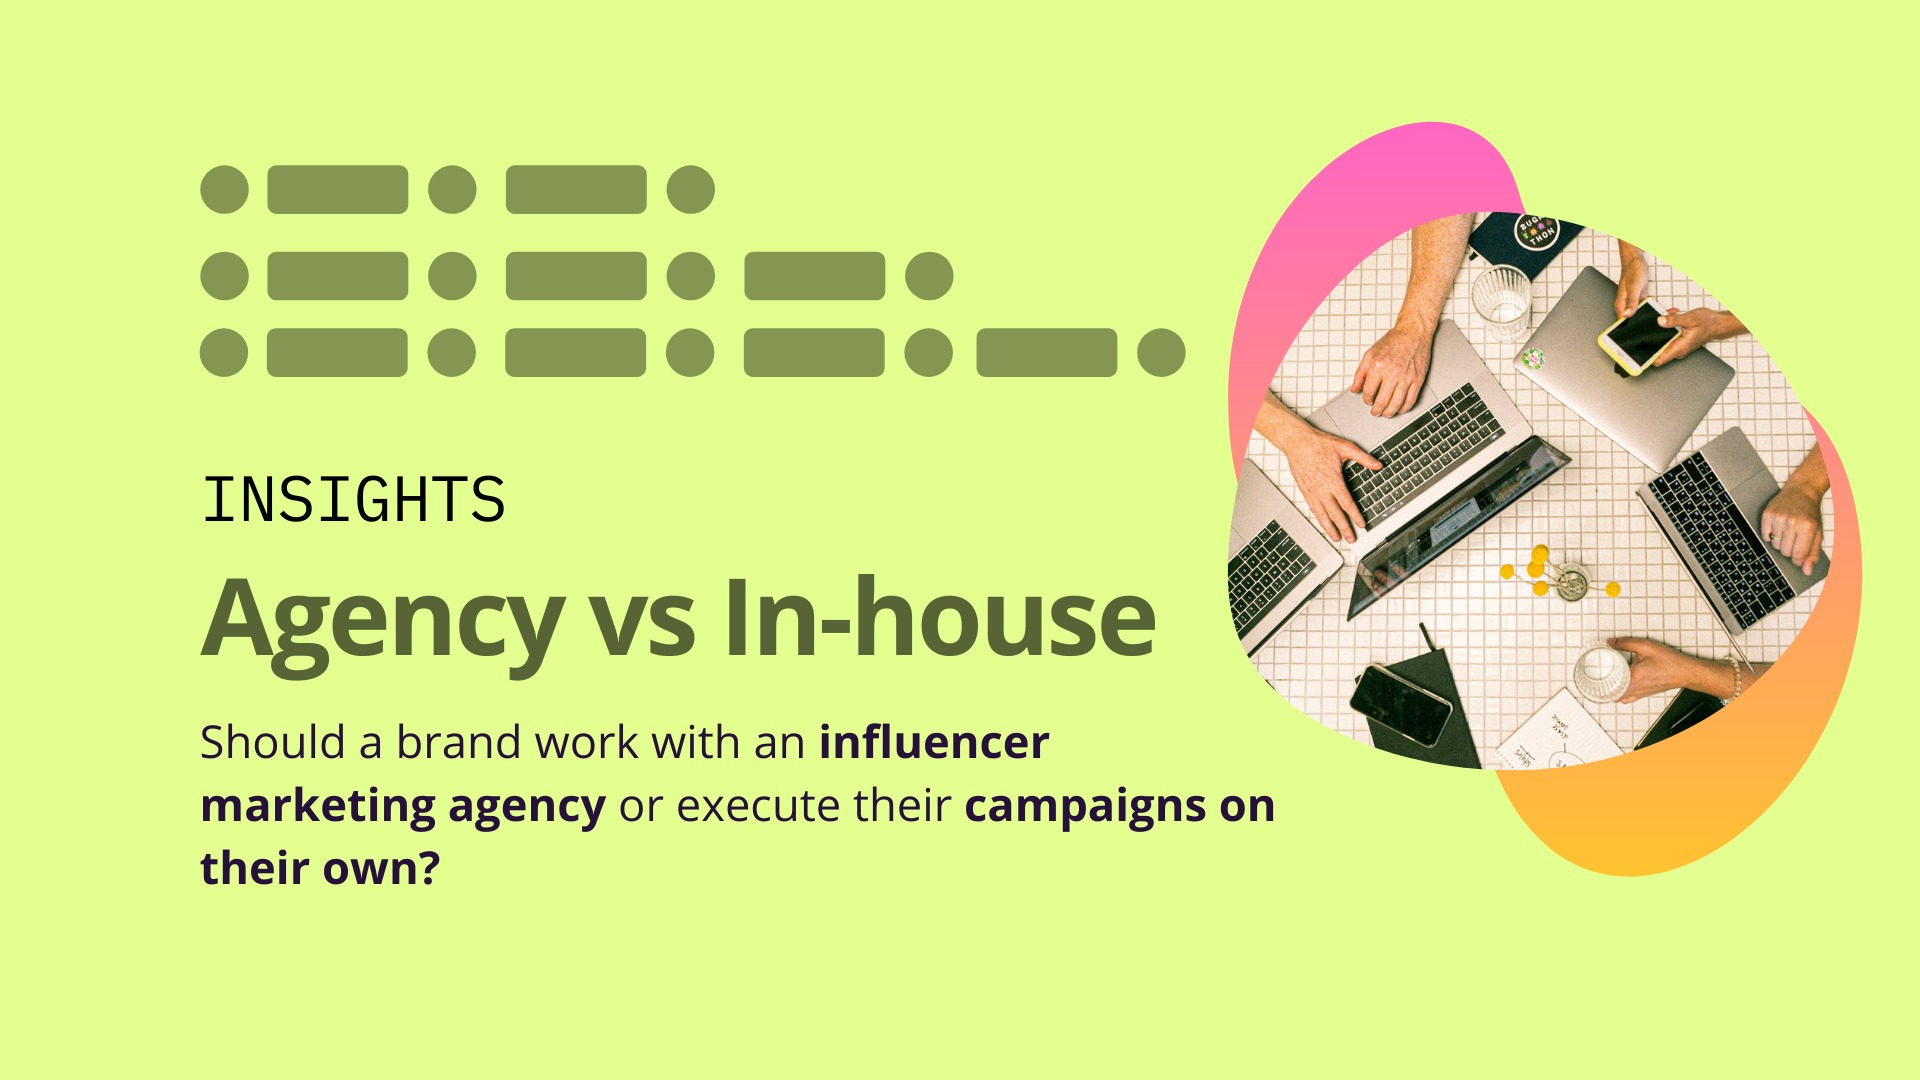 Should a brand work with an influencer marketing agency or execute their campaigns on their own? image